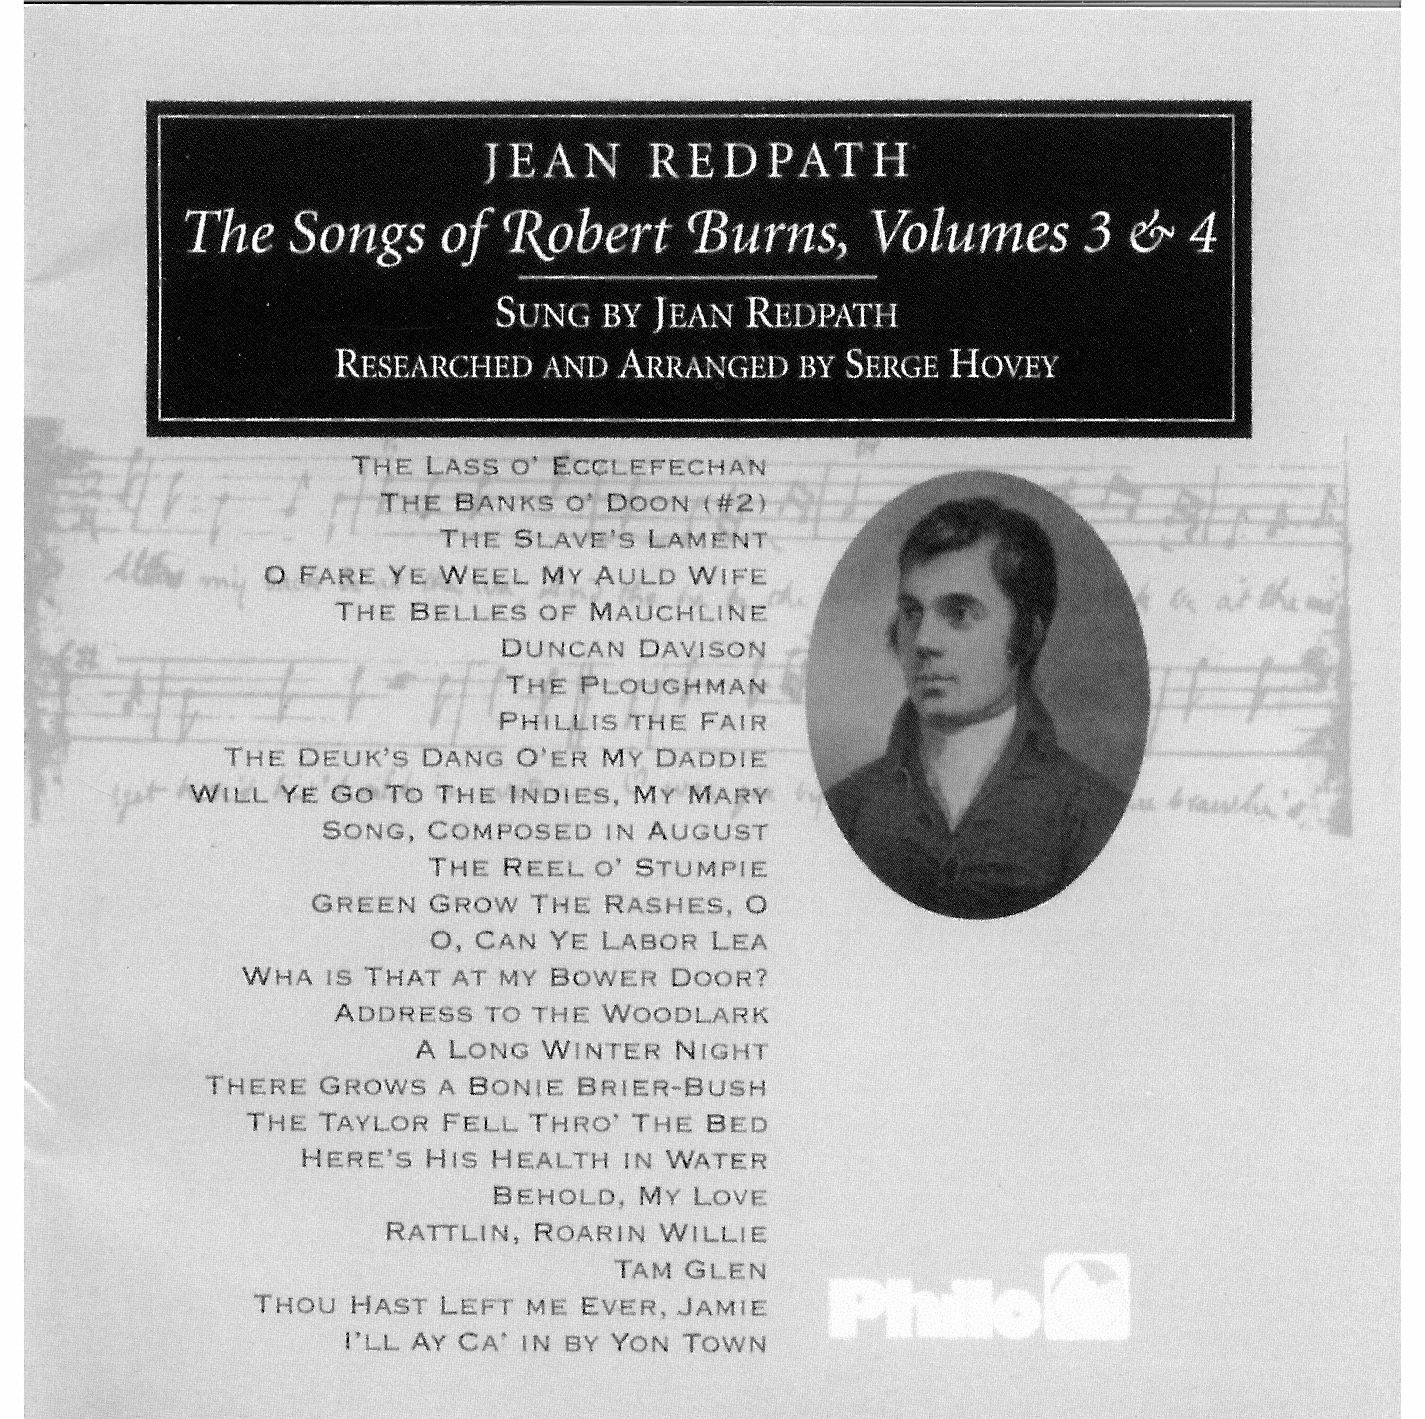 The Songs of Robert Burns, Volumes 3 & 4